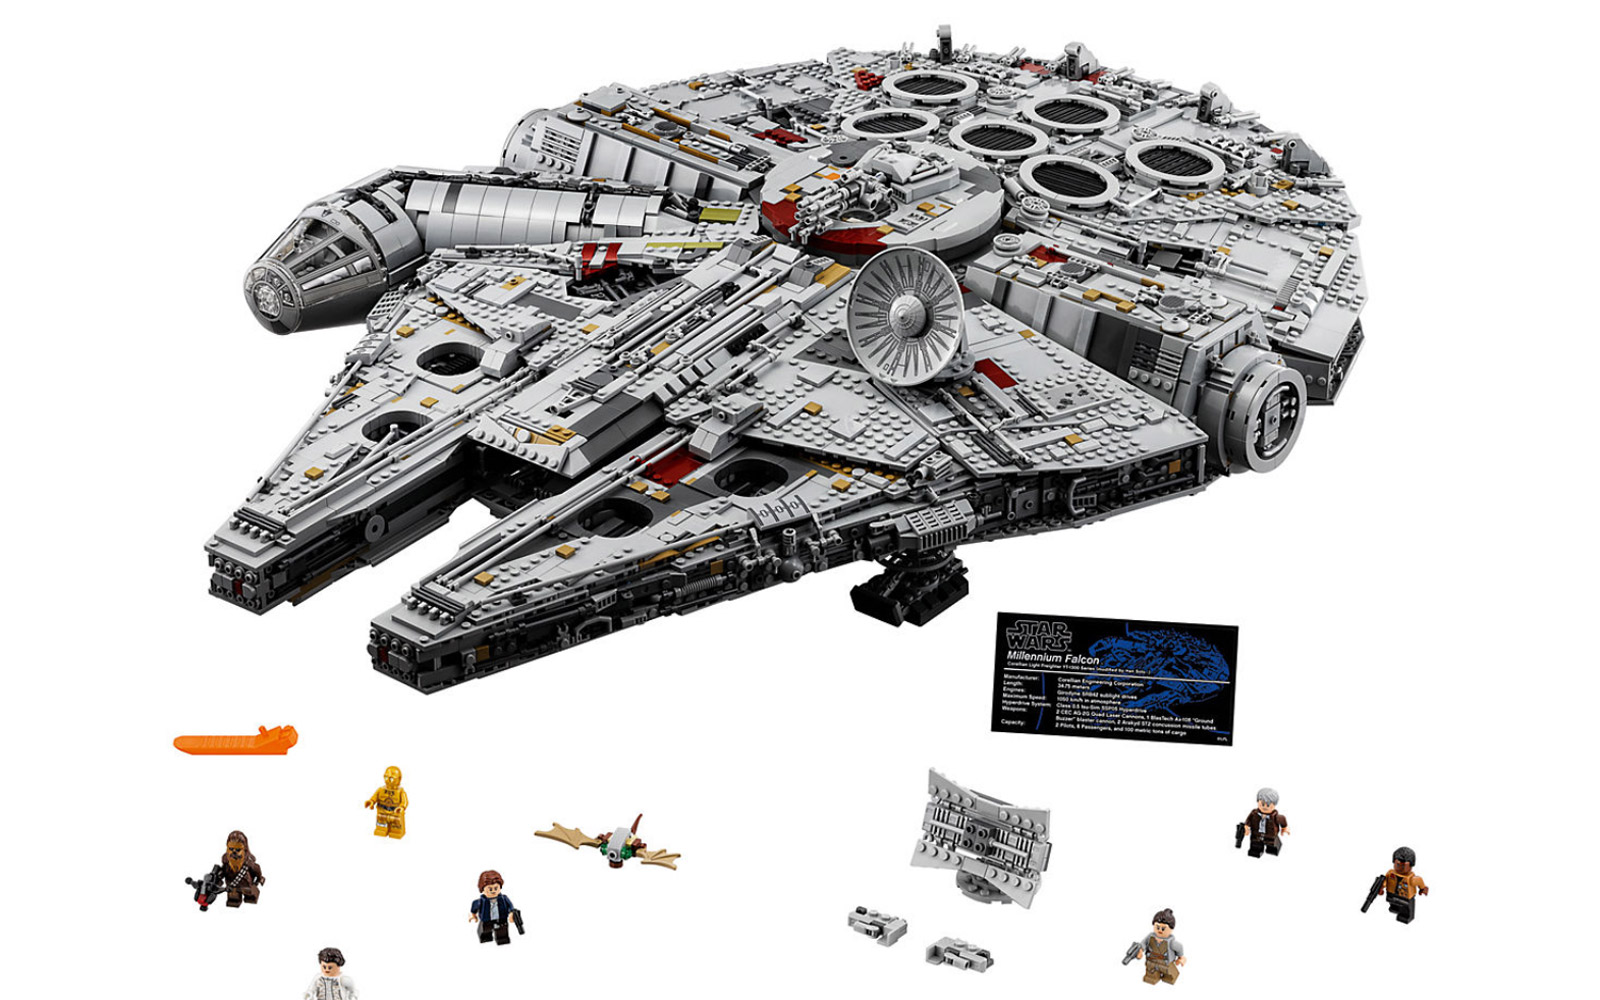 Star Wars Millennium Falcon Is Biggest LEGO Set Ever